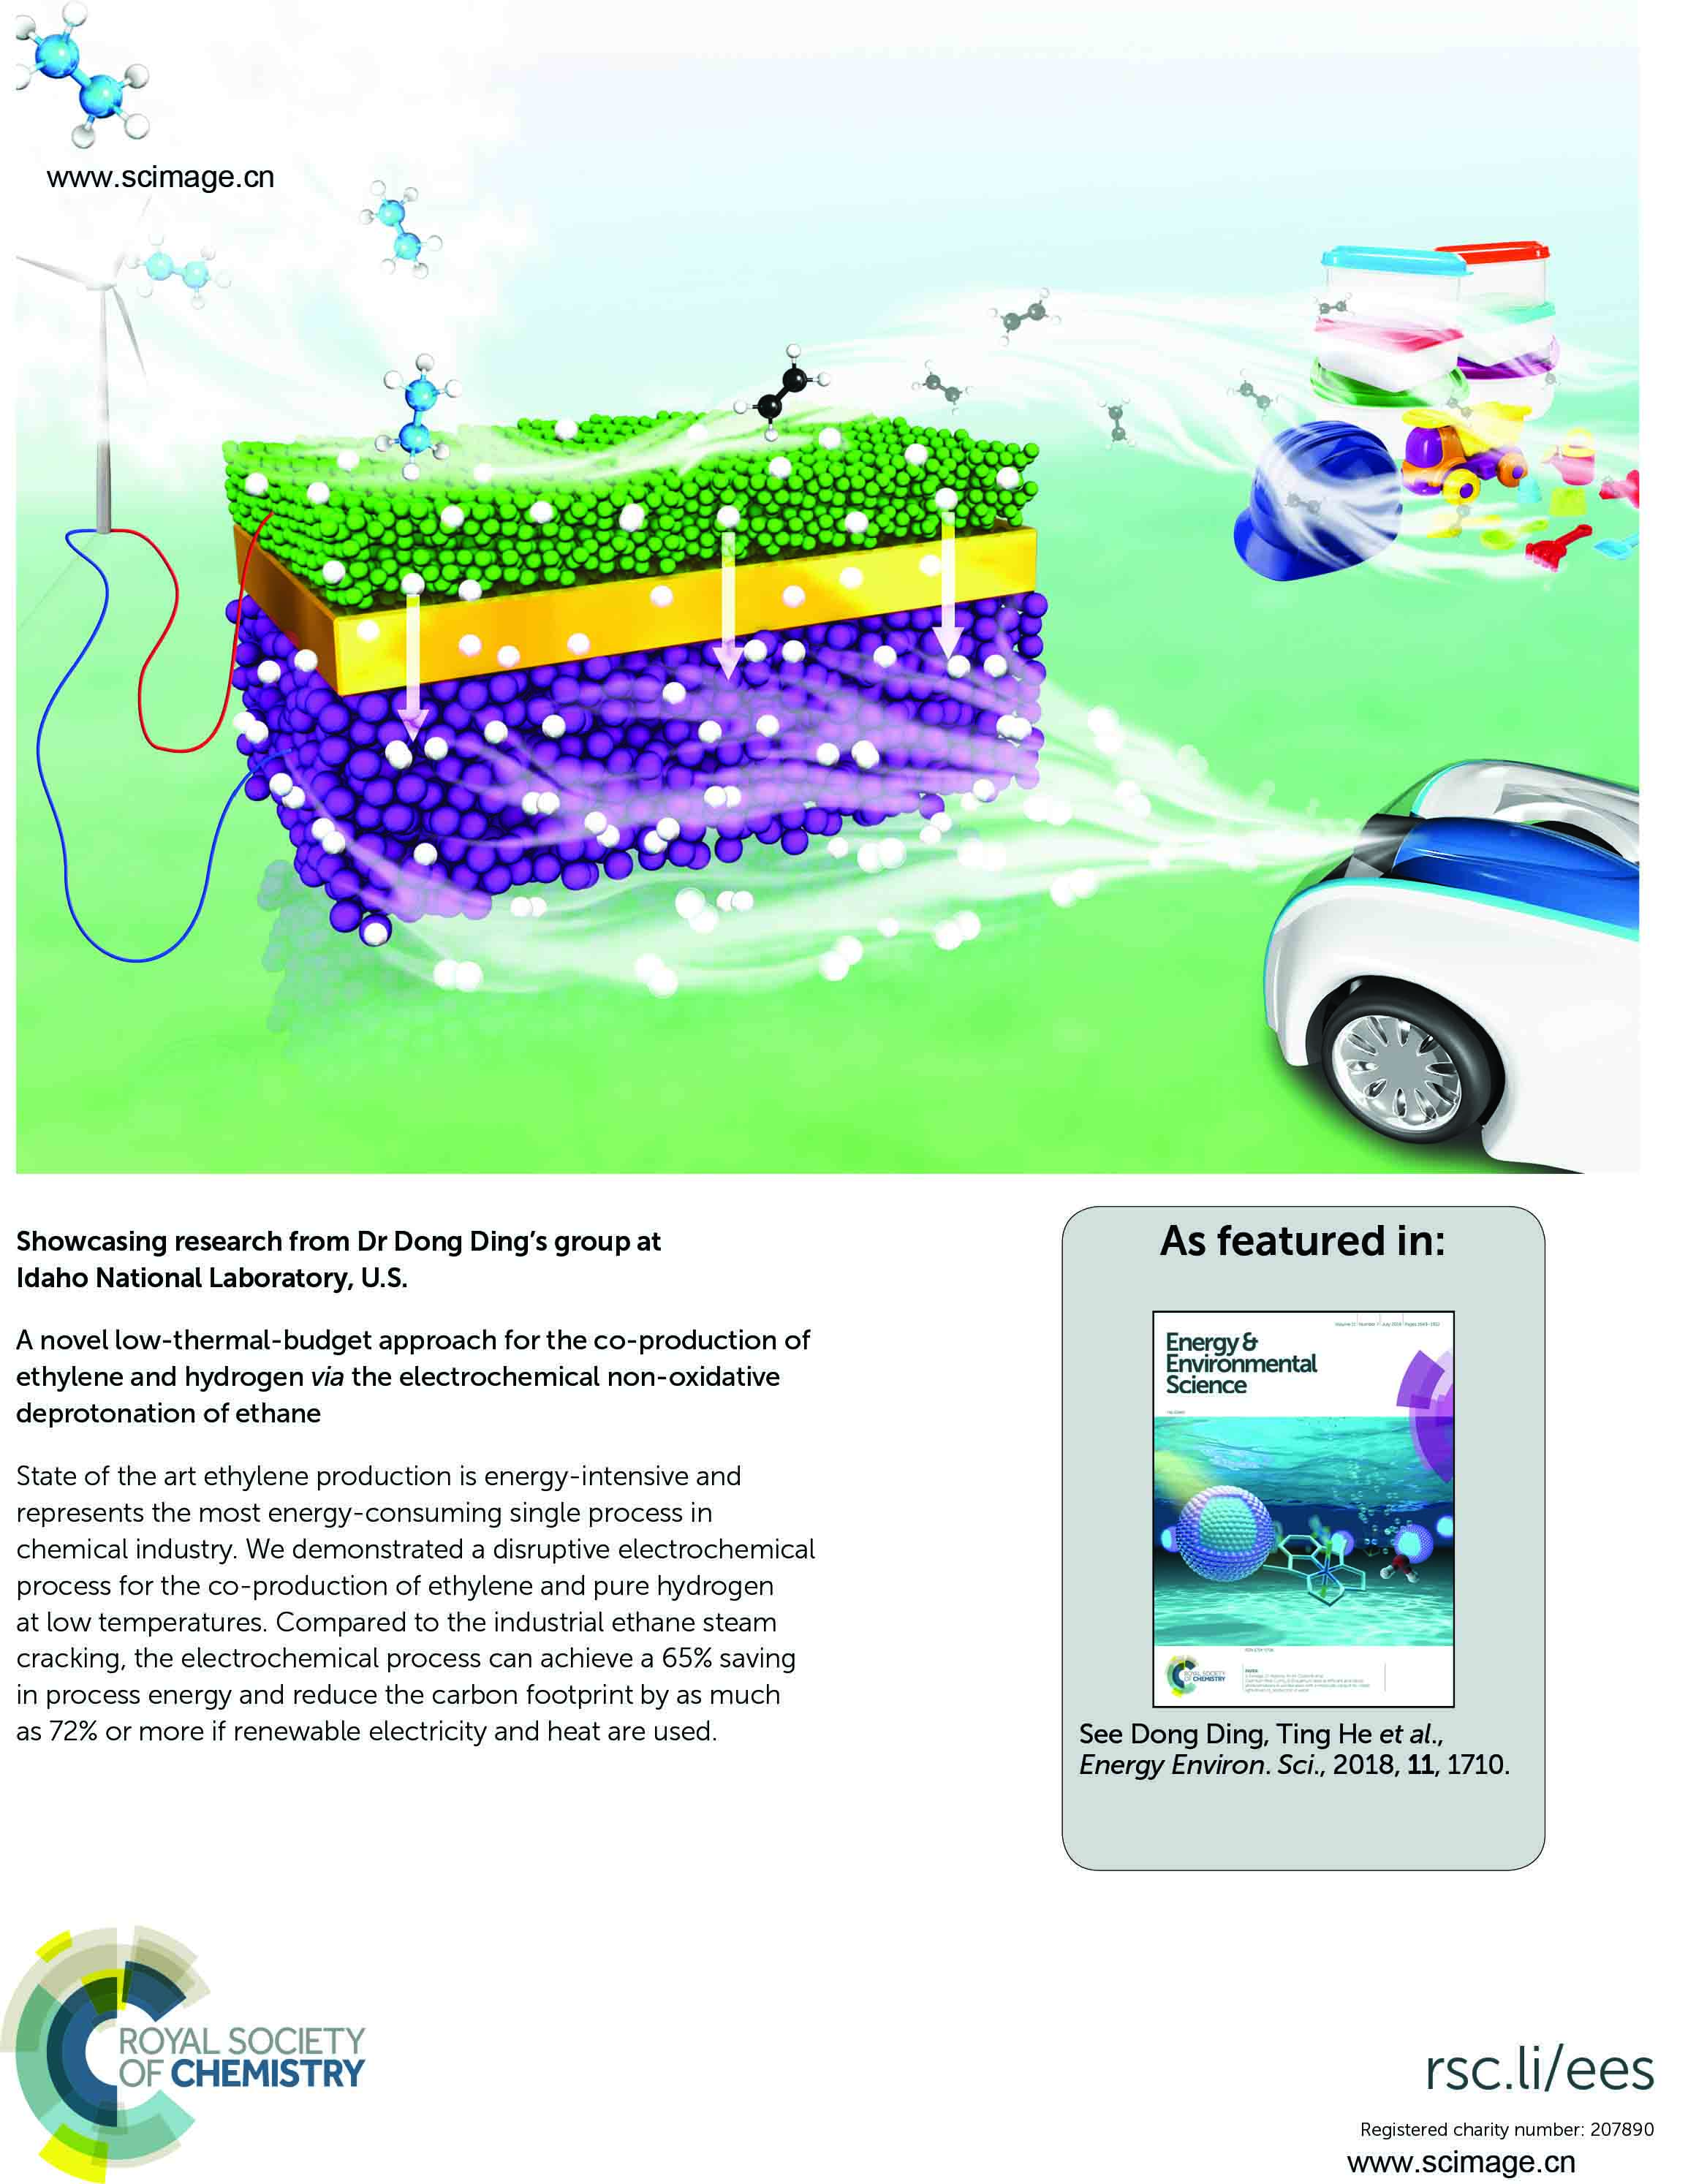 A novel low-thermal-budget approach for the co-production of ethylene and hydrogen via the electrochemical non-oxidative deprotonation of ethane